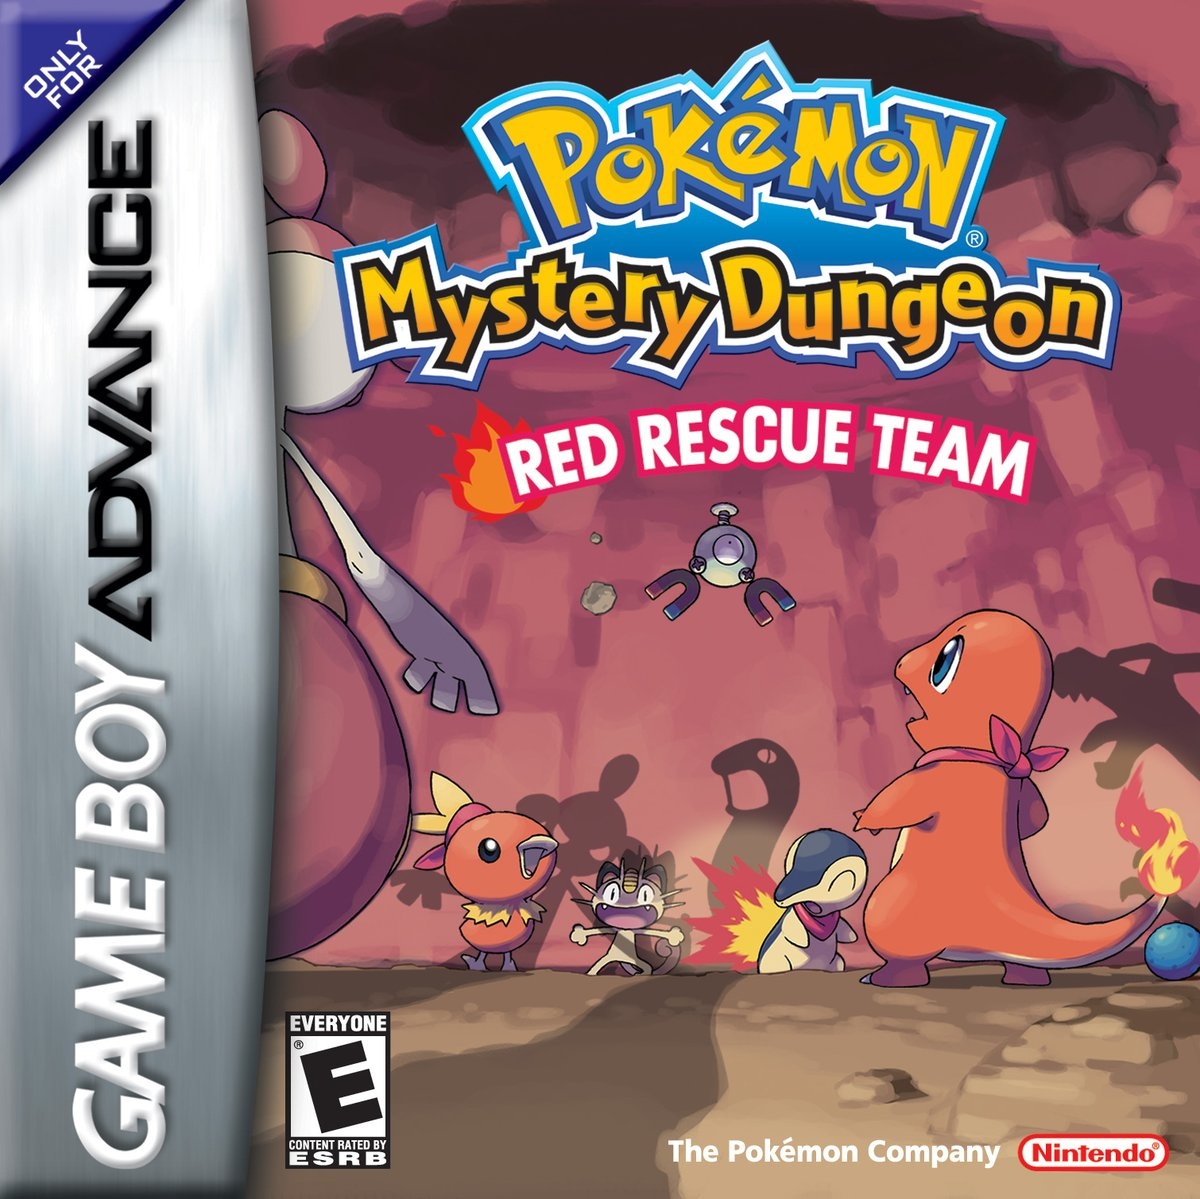 Feeling nostalgic while playing #PokemonMysteryDungeonDX? Take a trip down memory lane and check out some of these throwback songs from Pokémon Mystery Dungeon: Red Rescue Team and Blue Rescue Team! 🎶bit.ly/2WRiRm1